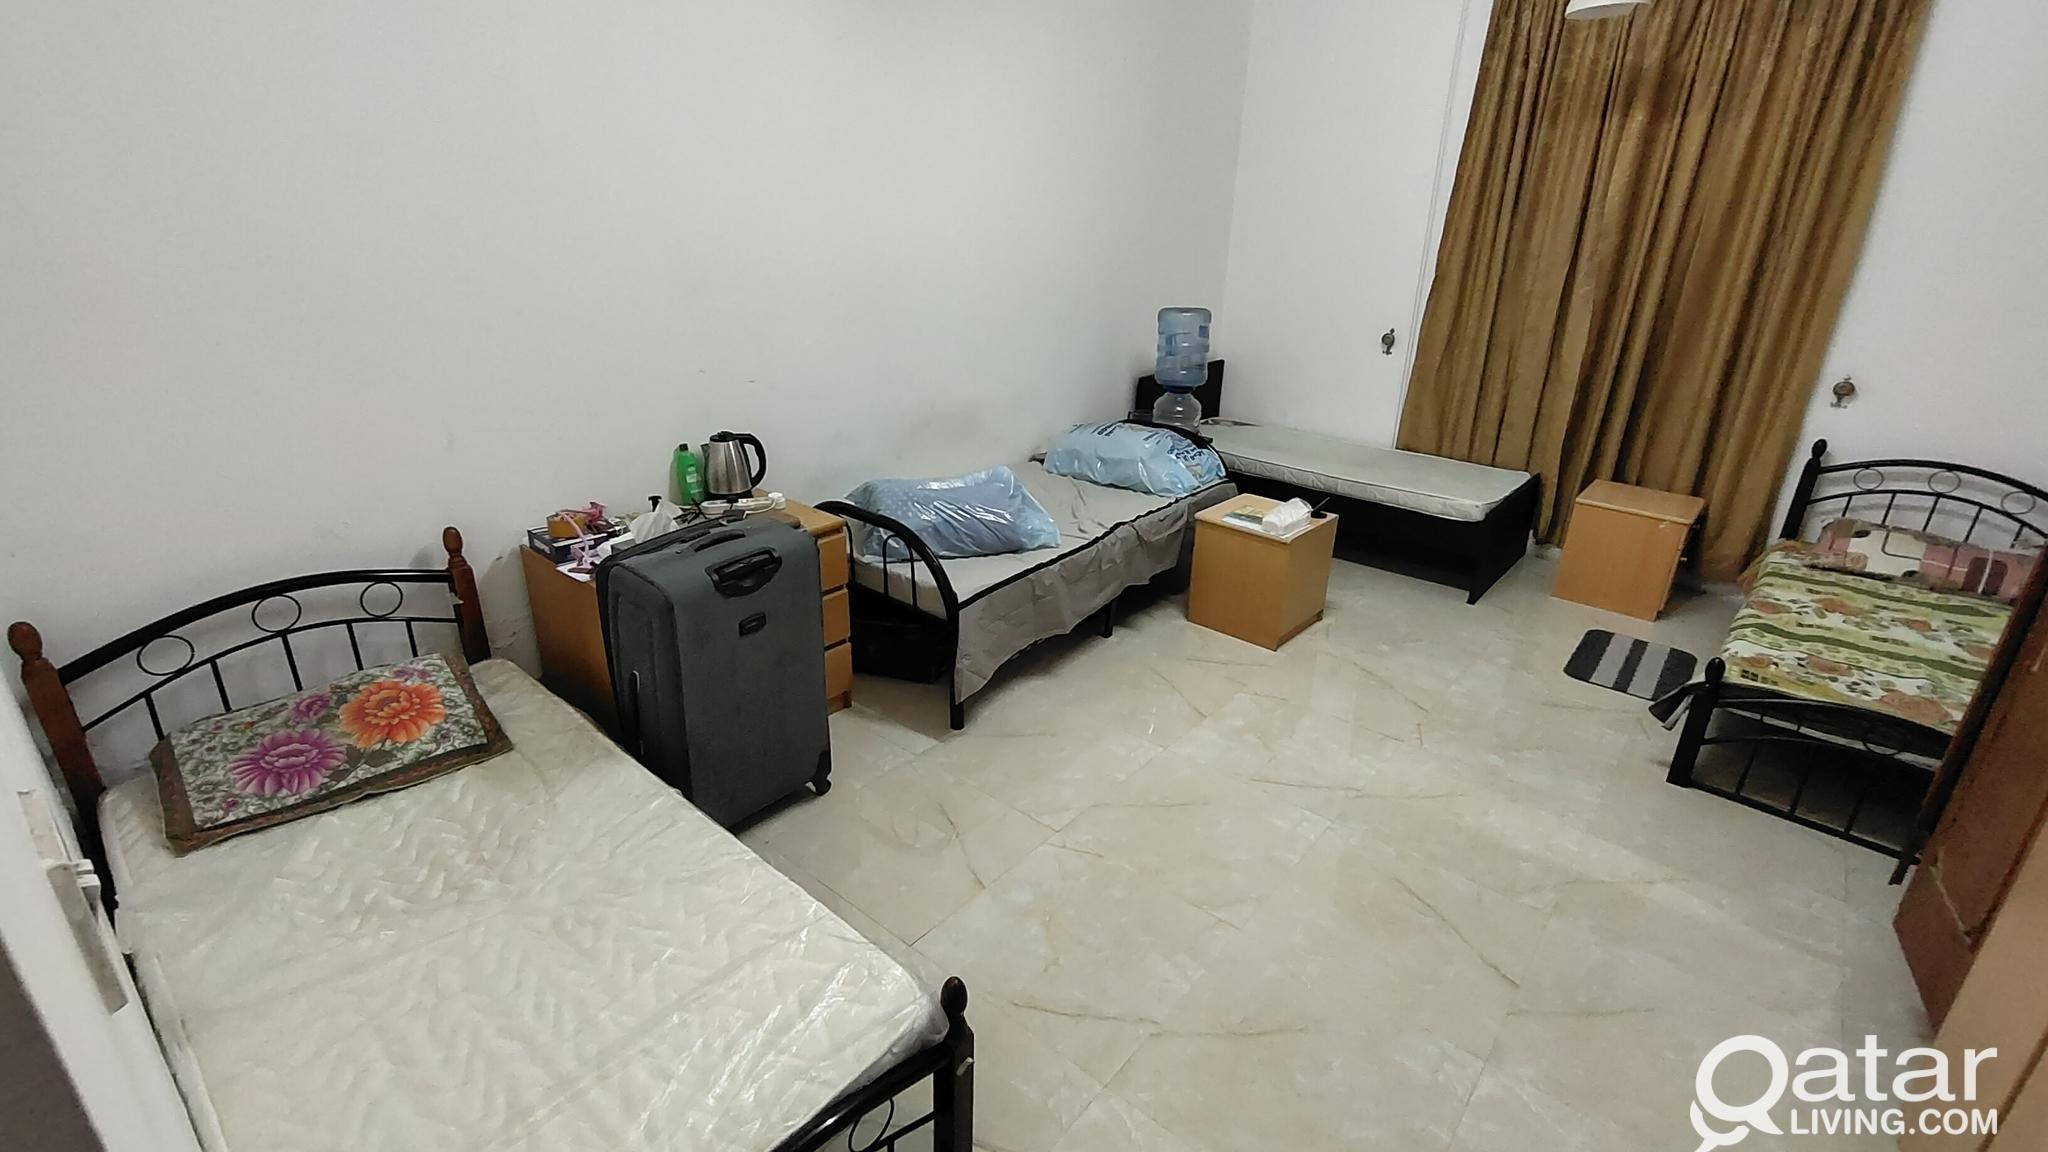 Bed Space for Bachelors (in bath attached room) in